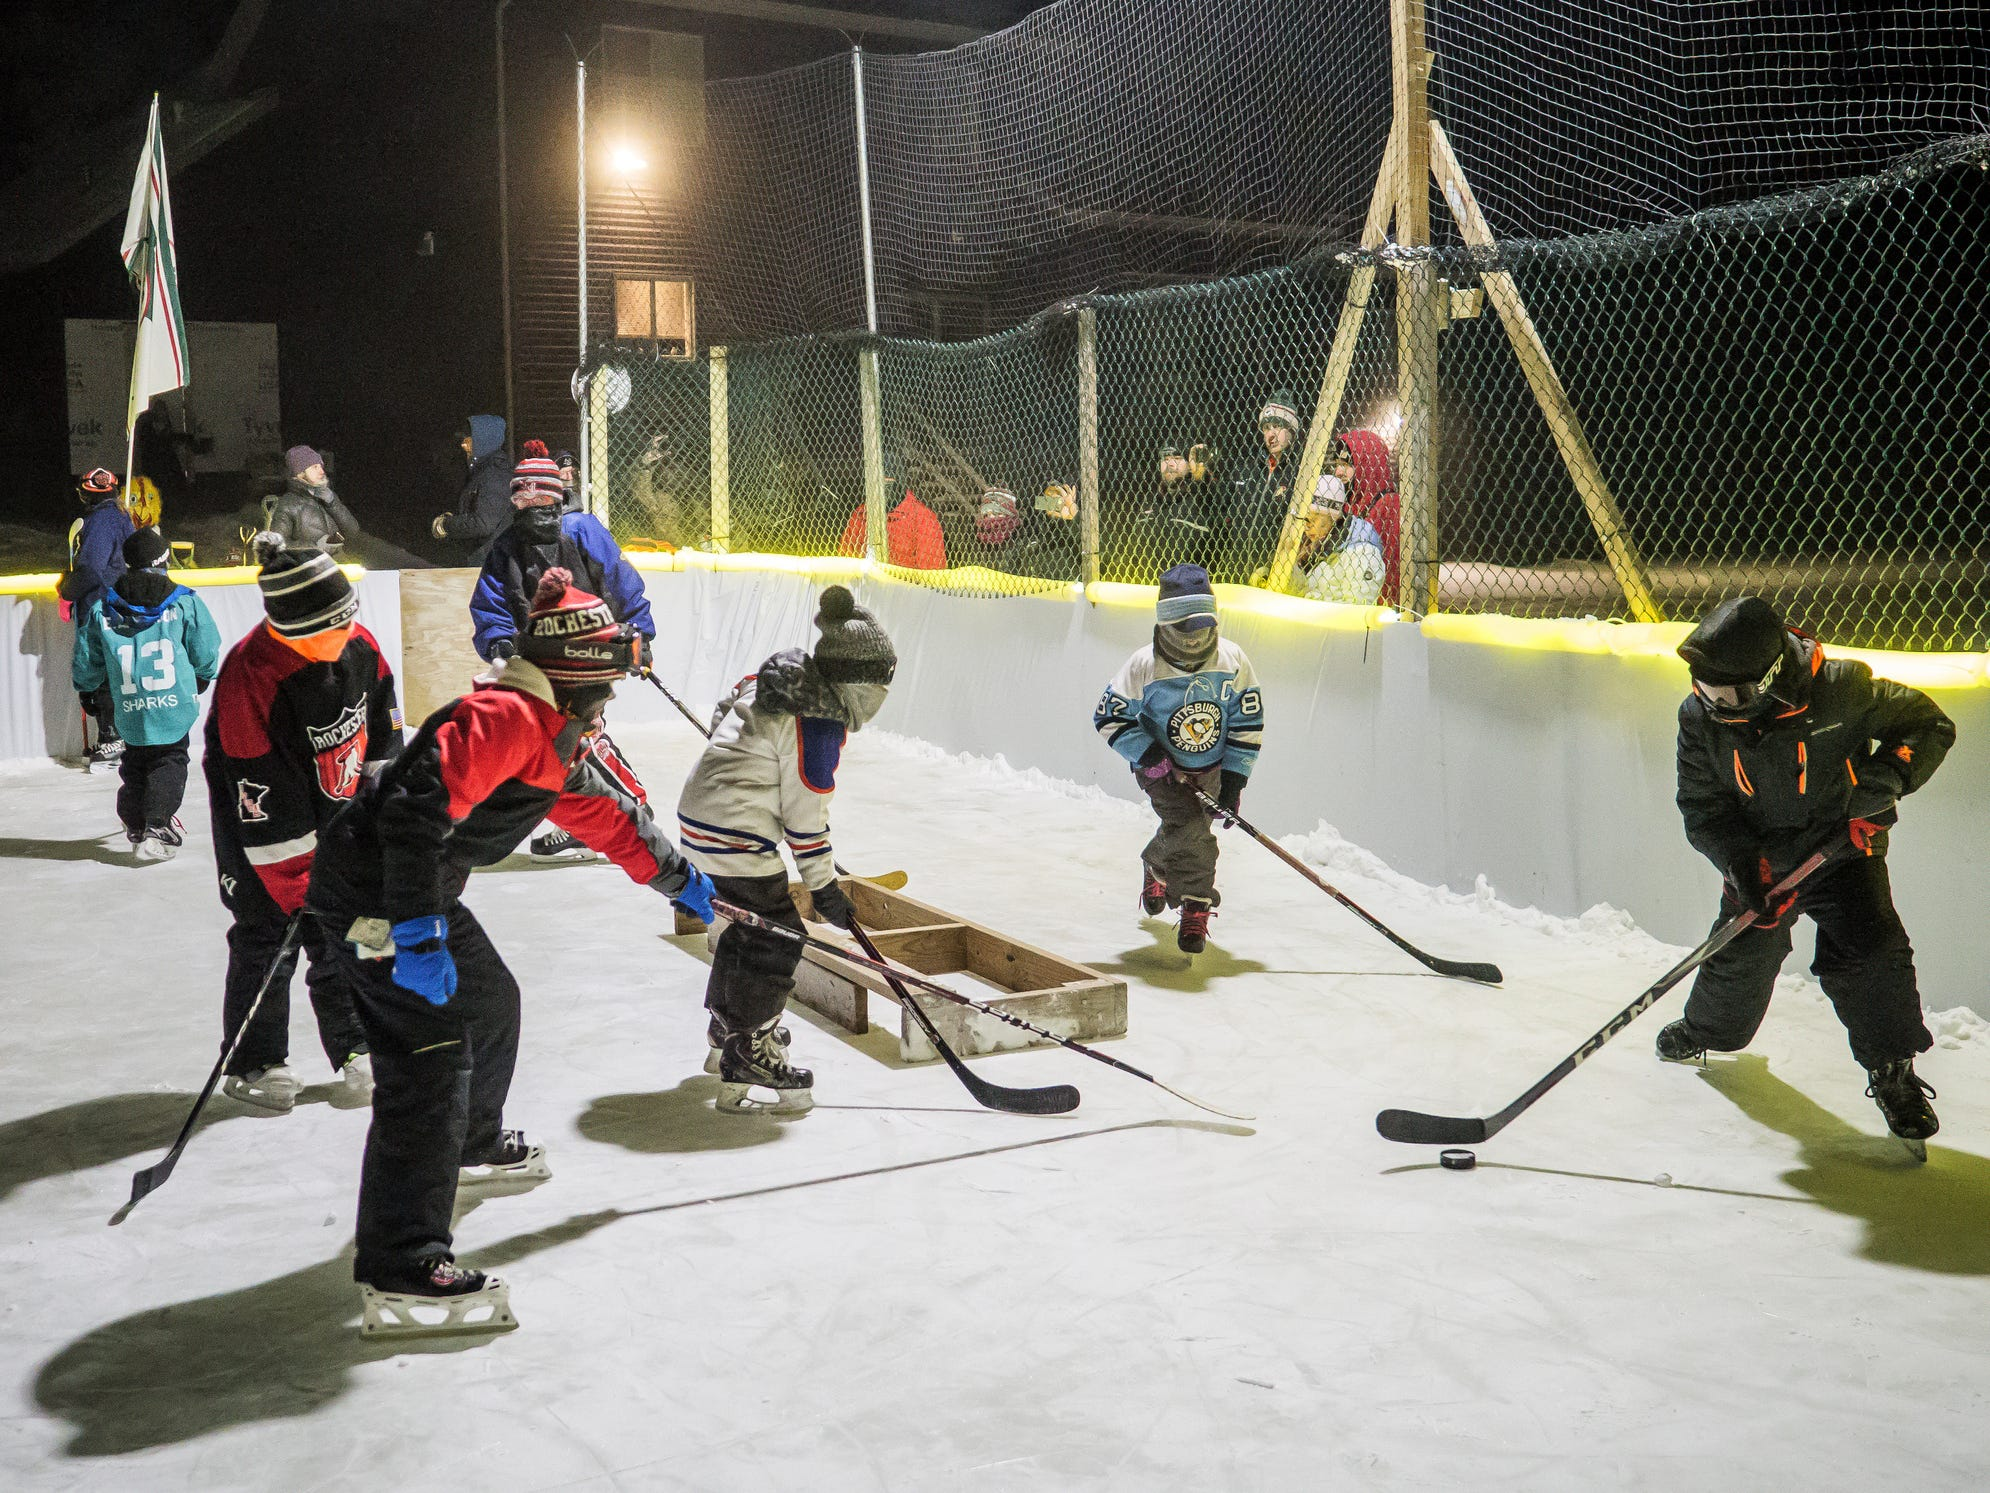 Hockey players chase the puck during an attempt at the Guinness Book of World Records record for coldest hockey game played Thursday,  Jan. 31, 2019, in the backyard belonging to Mike Burman in northwest Rochester, Minn. About 25 kids took to the ice in the attempt. The air temperature, according to the National Weather Service, was in the high negative 20s, and the wind chill was in the mid-negative 40s.